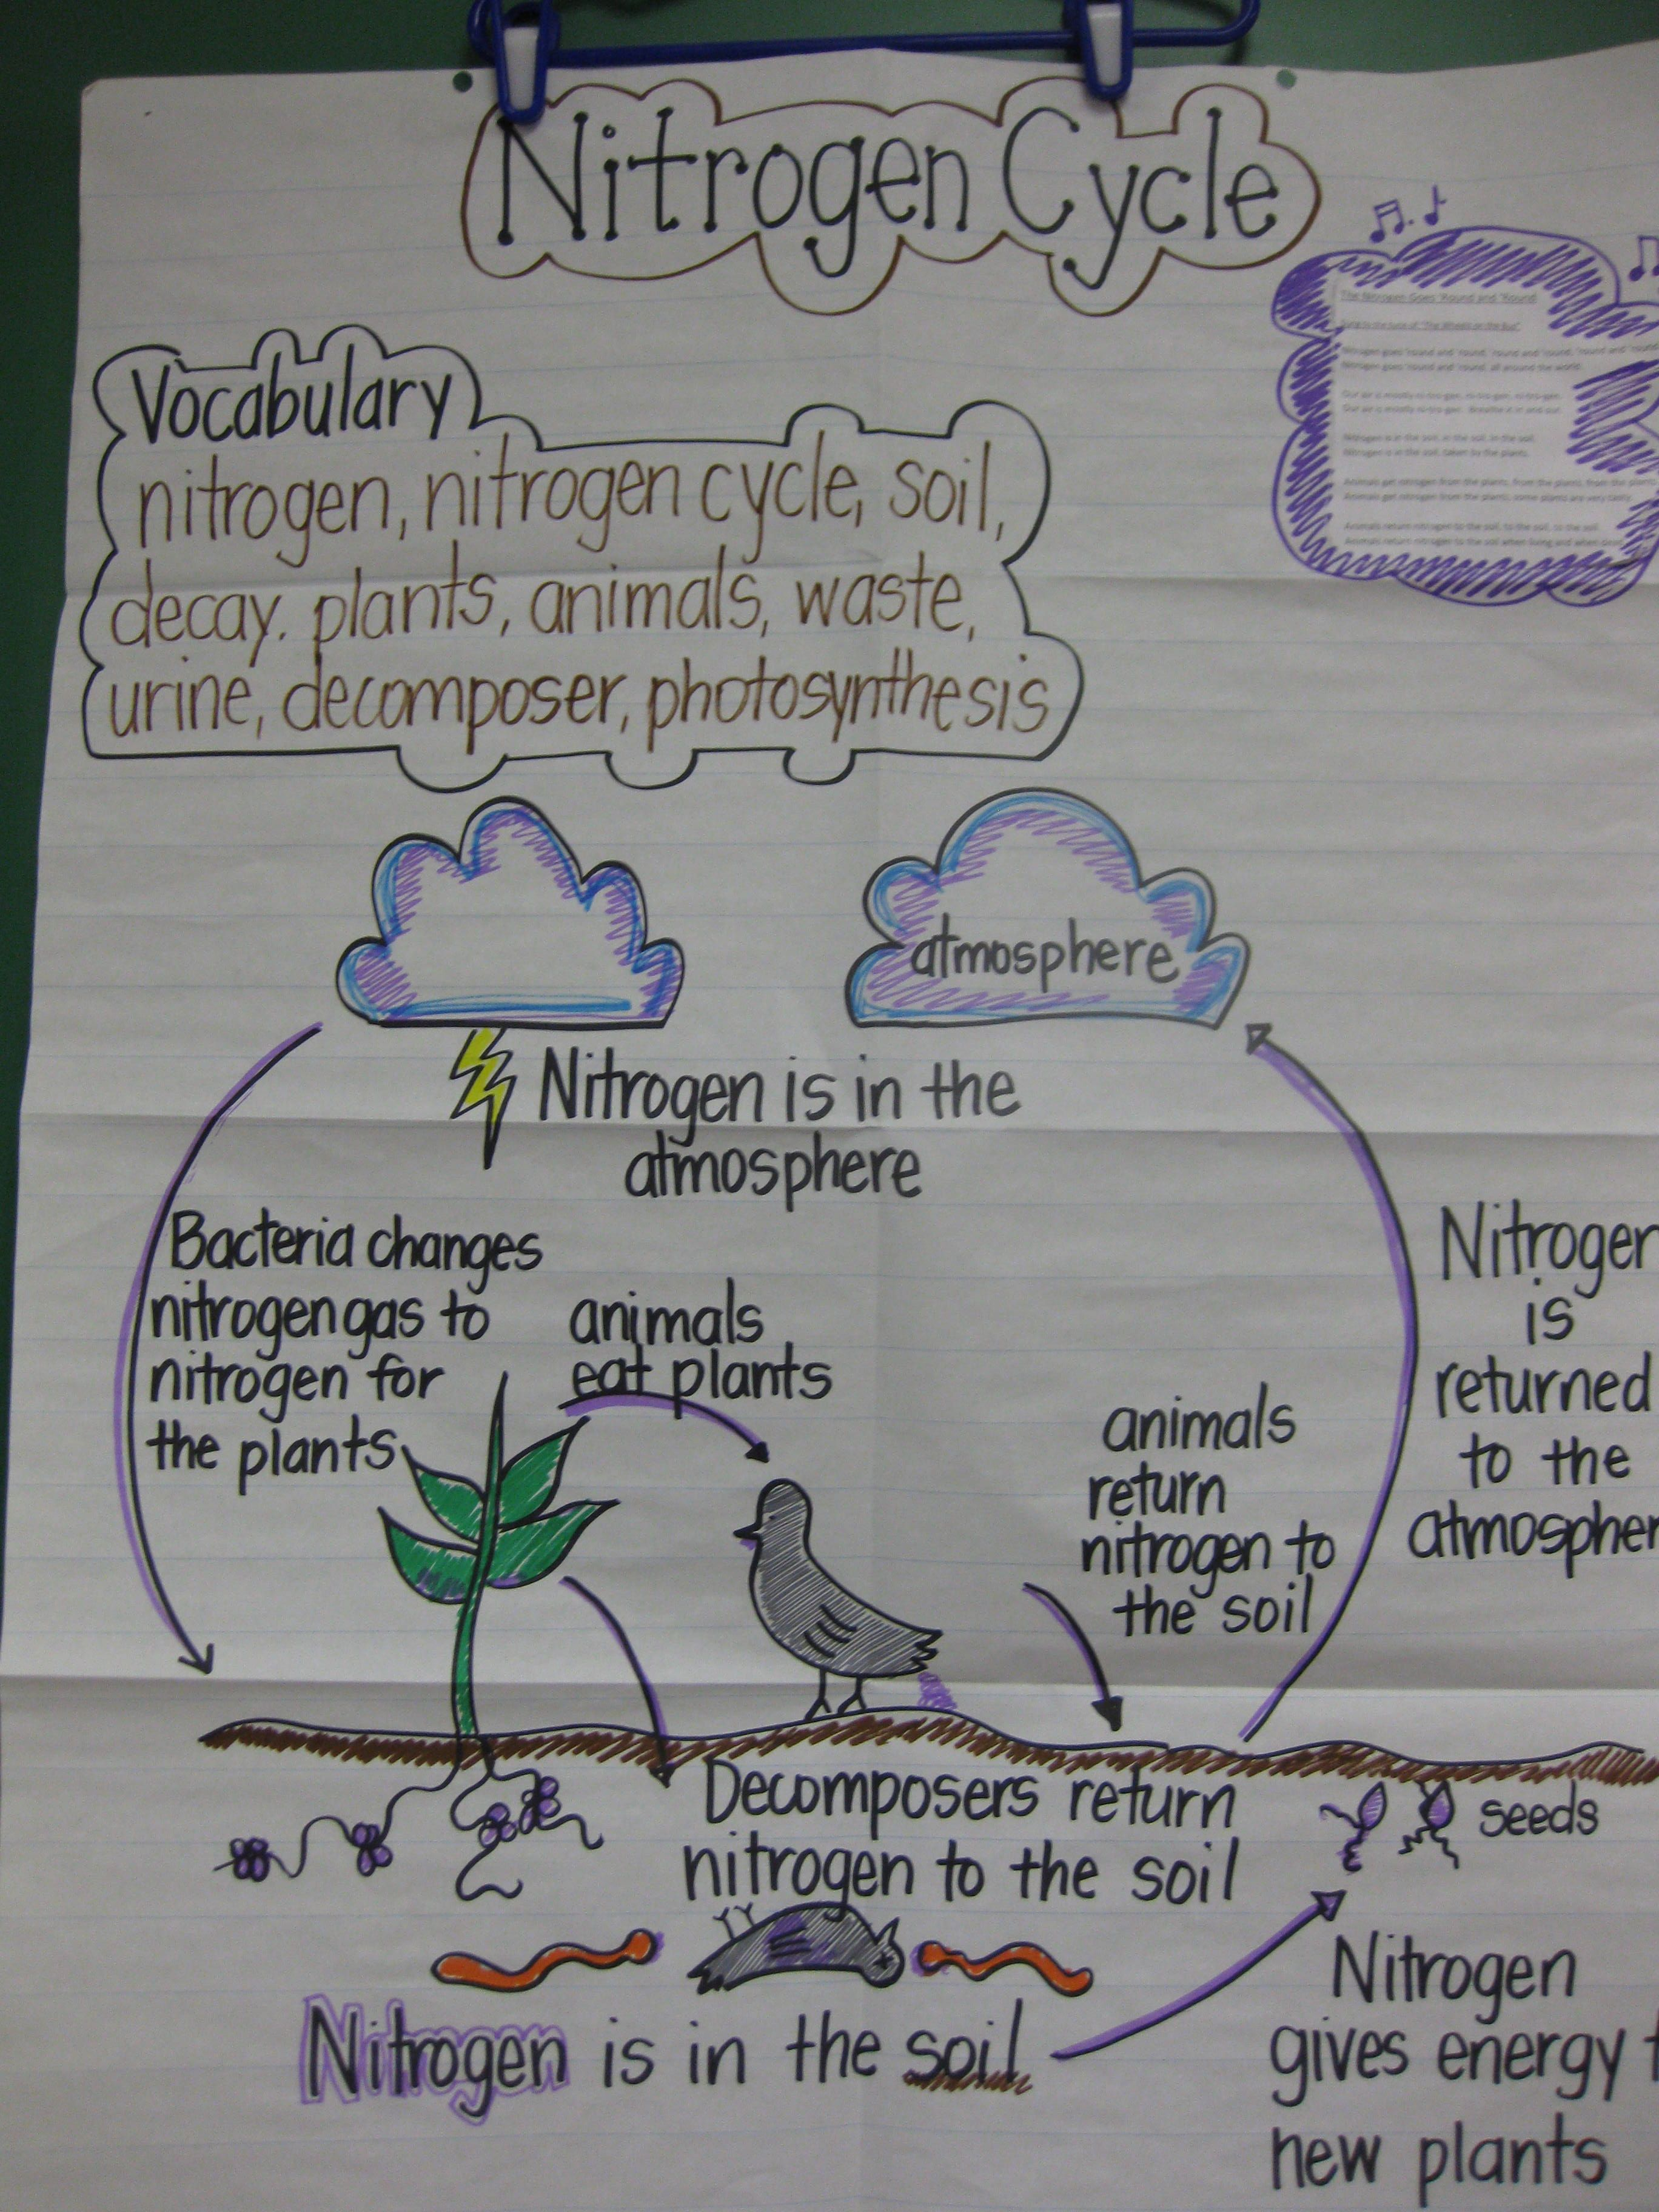 Staar Review Anchor Chart I Make This One To Review The Nitrogen Cycle With Students Before The